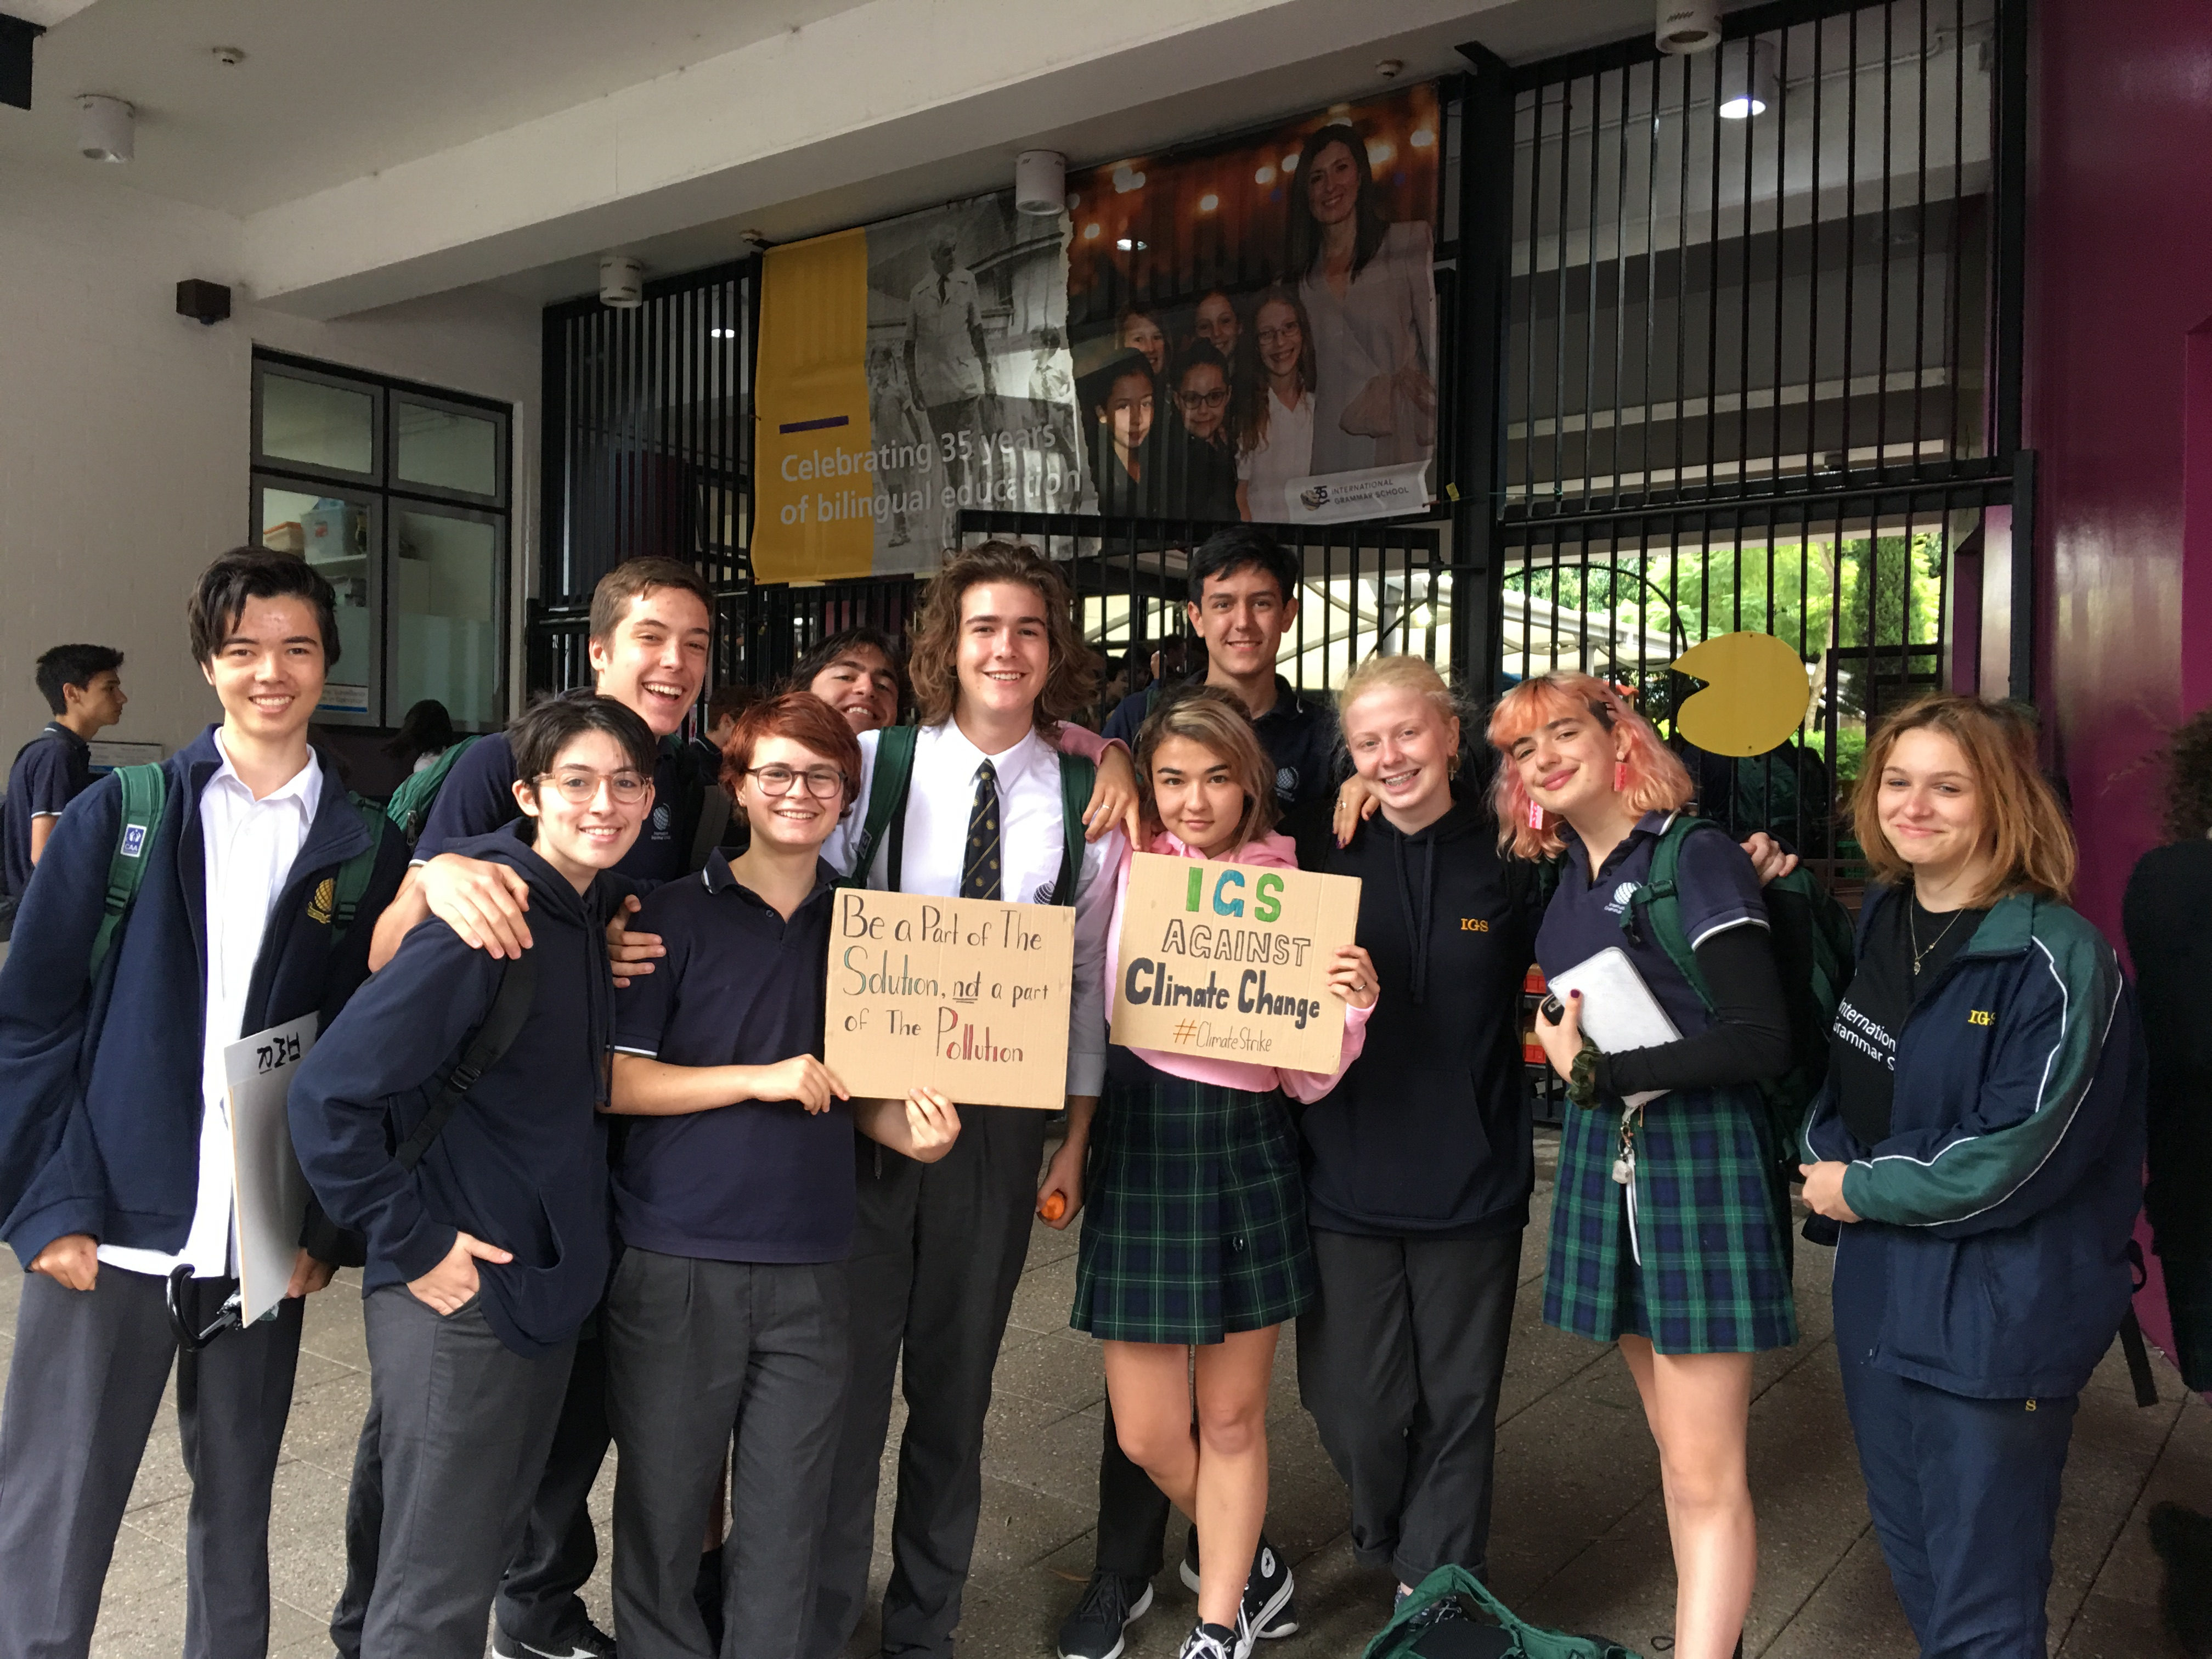 Students act on climate change